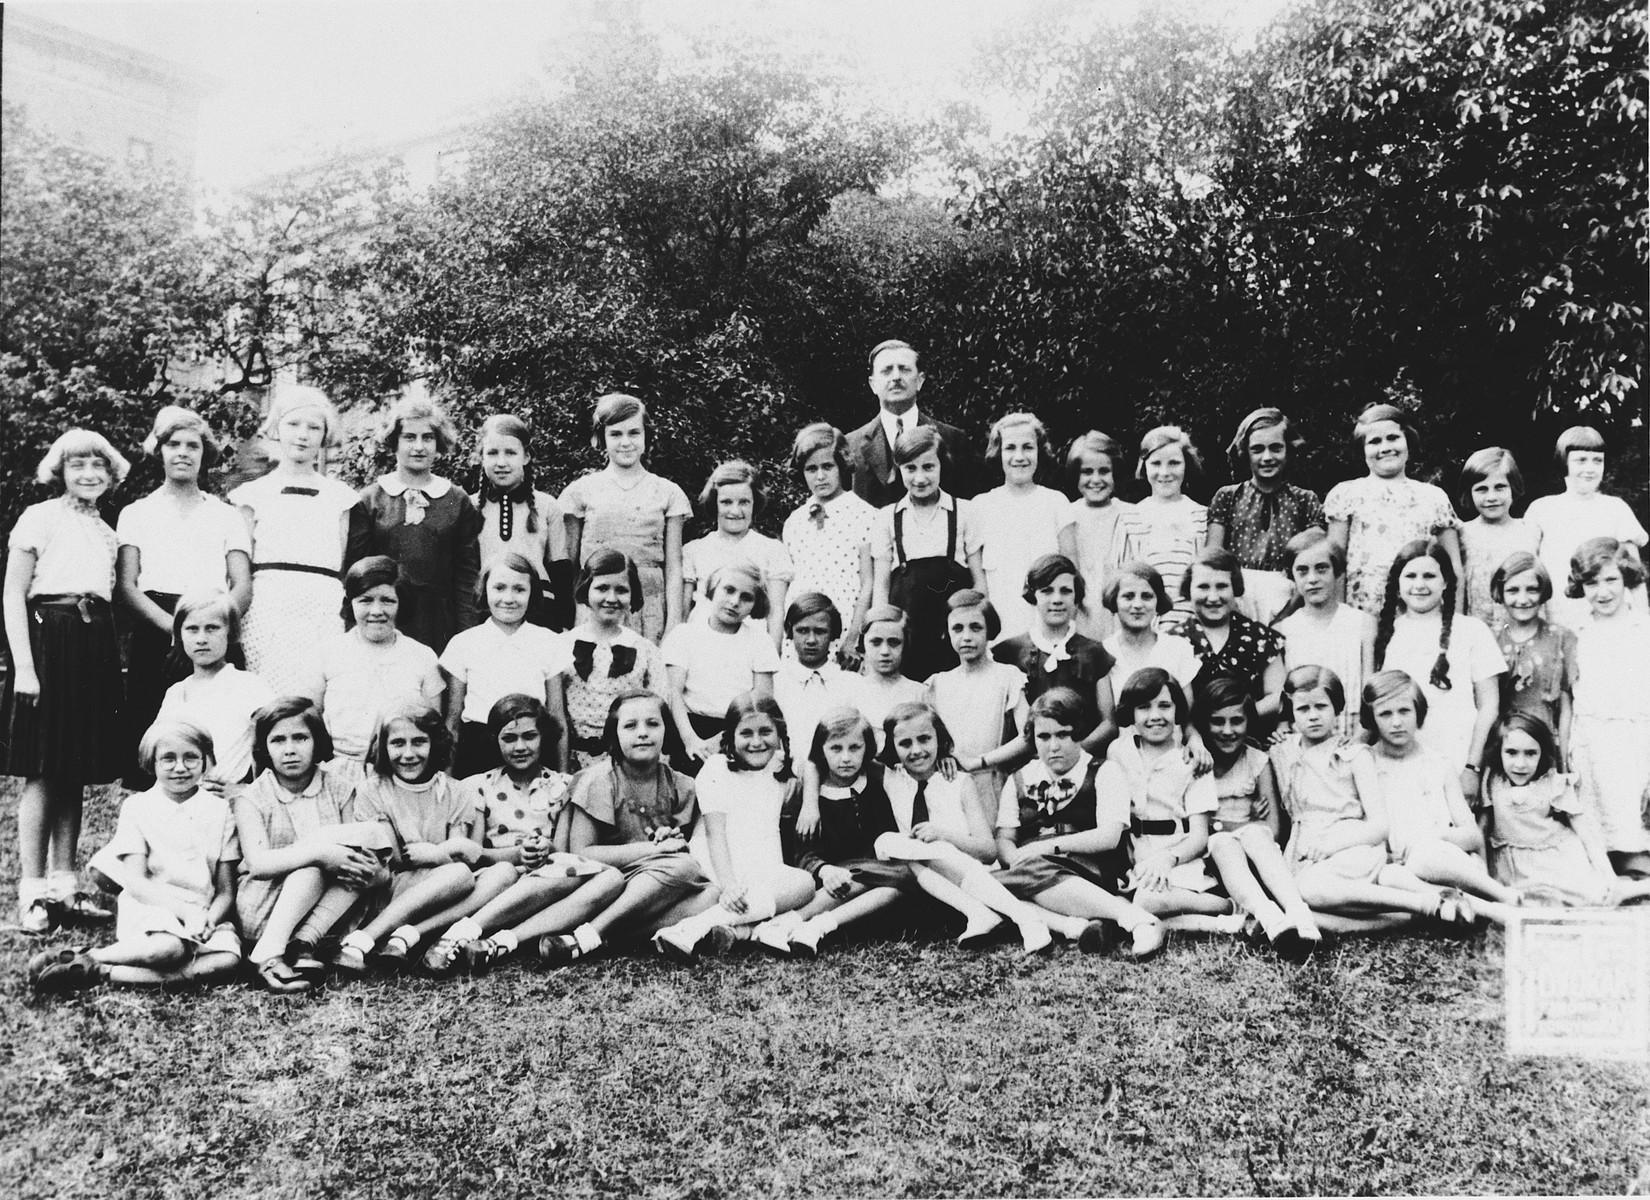 Group portrait of children from a public grammer school in Prague on an outing.  Some of the girls are Jewish.  Among those pictured is Hana Fuchs.